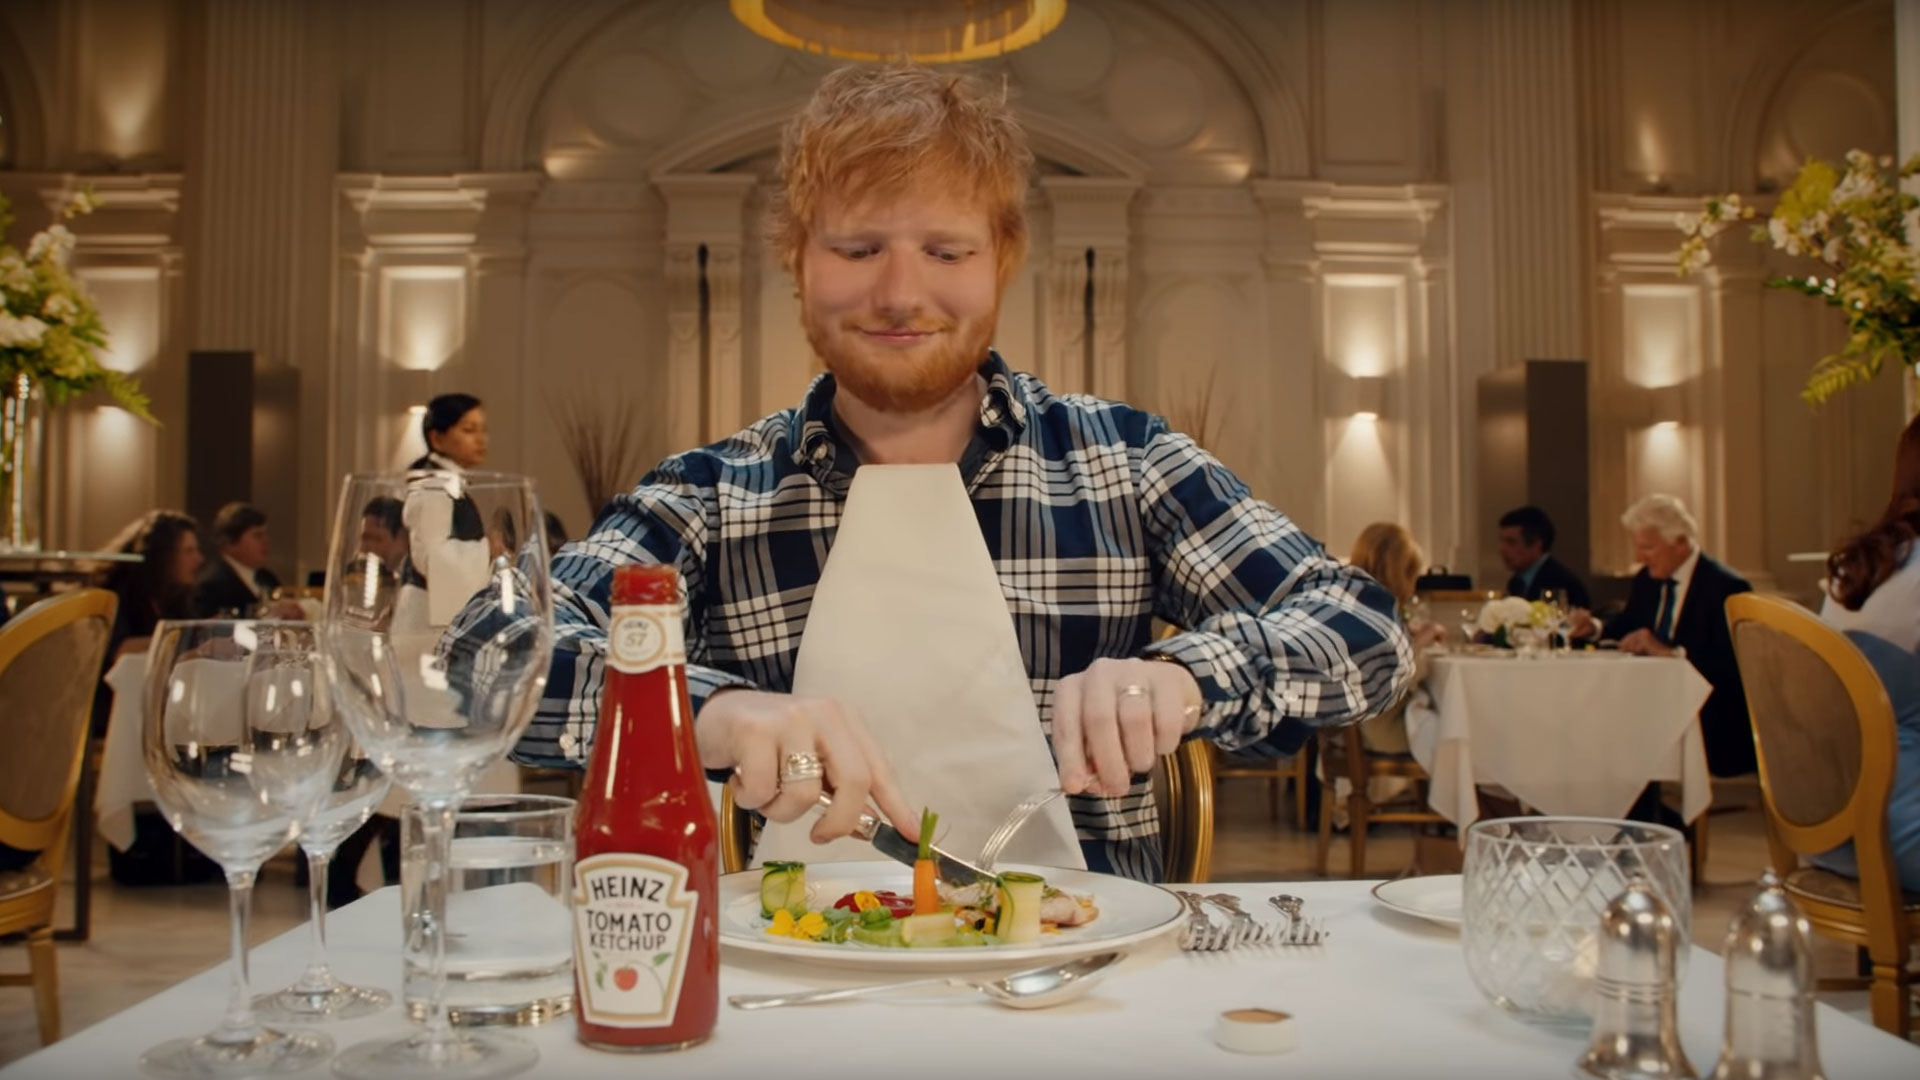 Campaign: Heinz Ketchup – Ed Chup